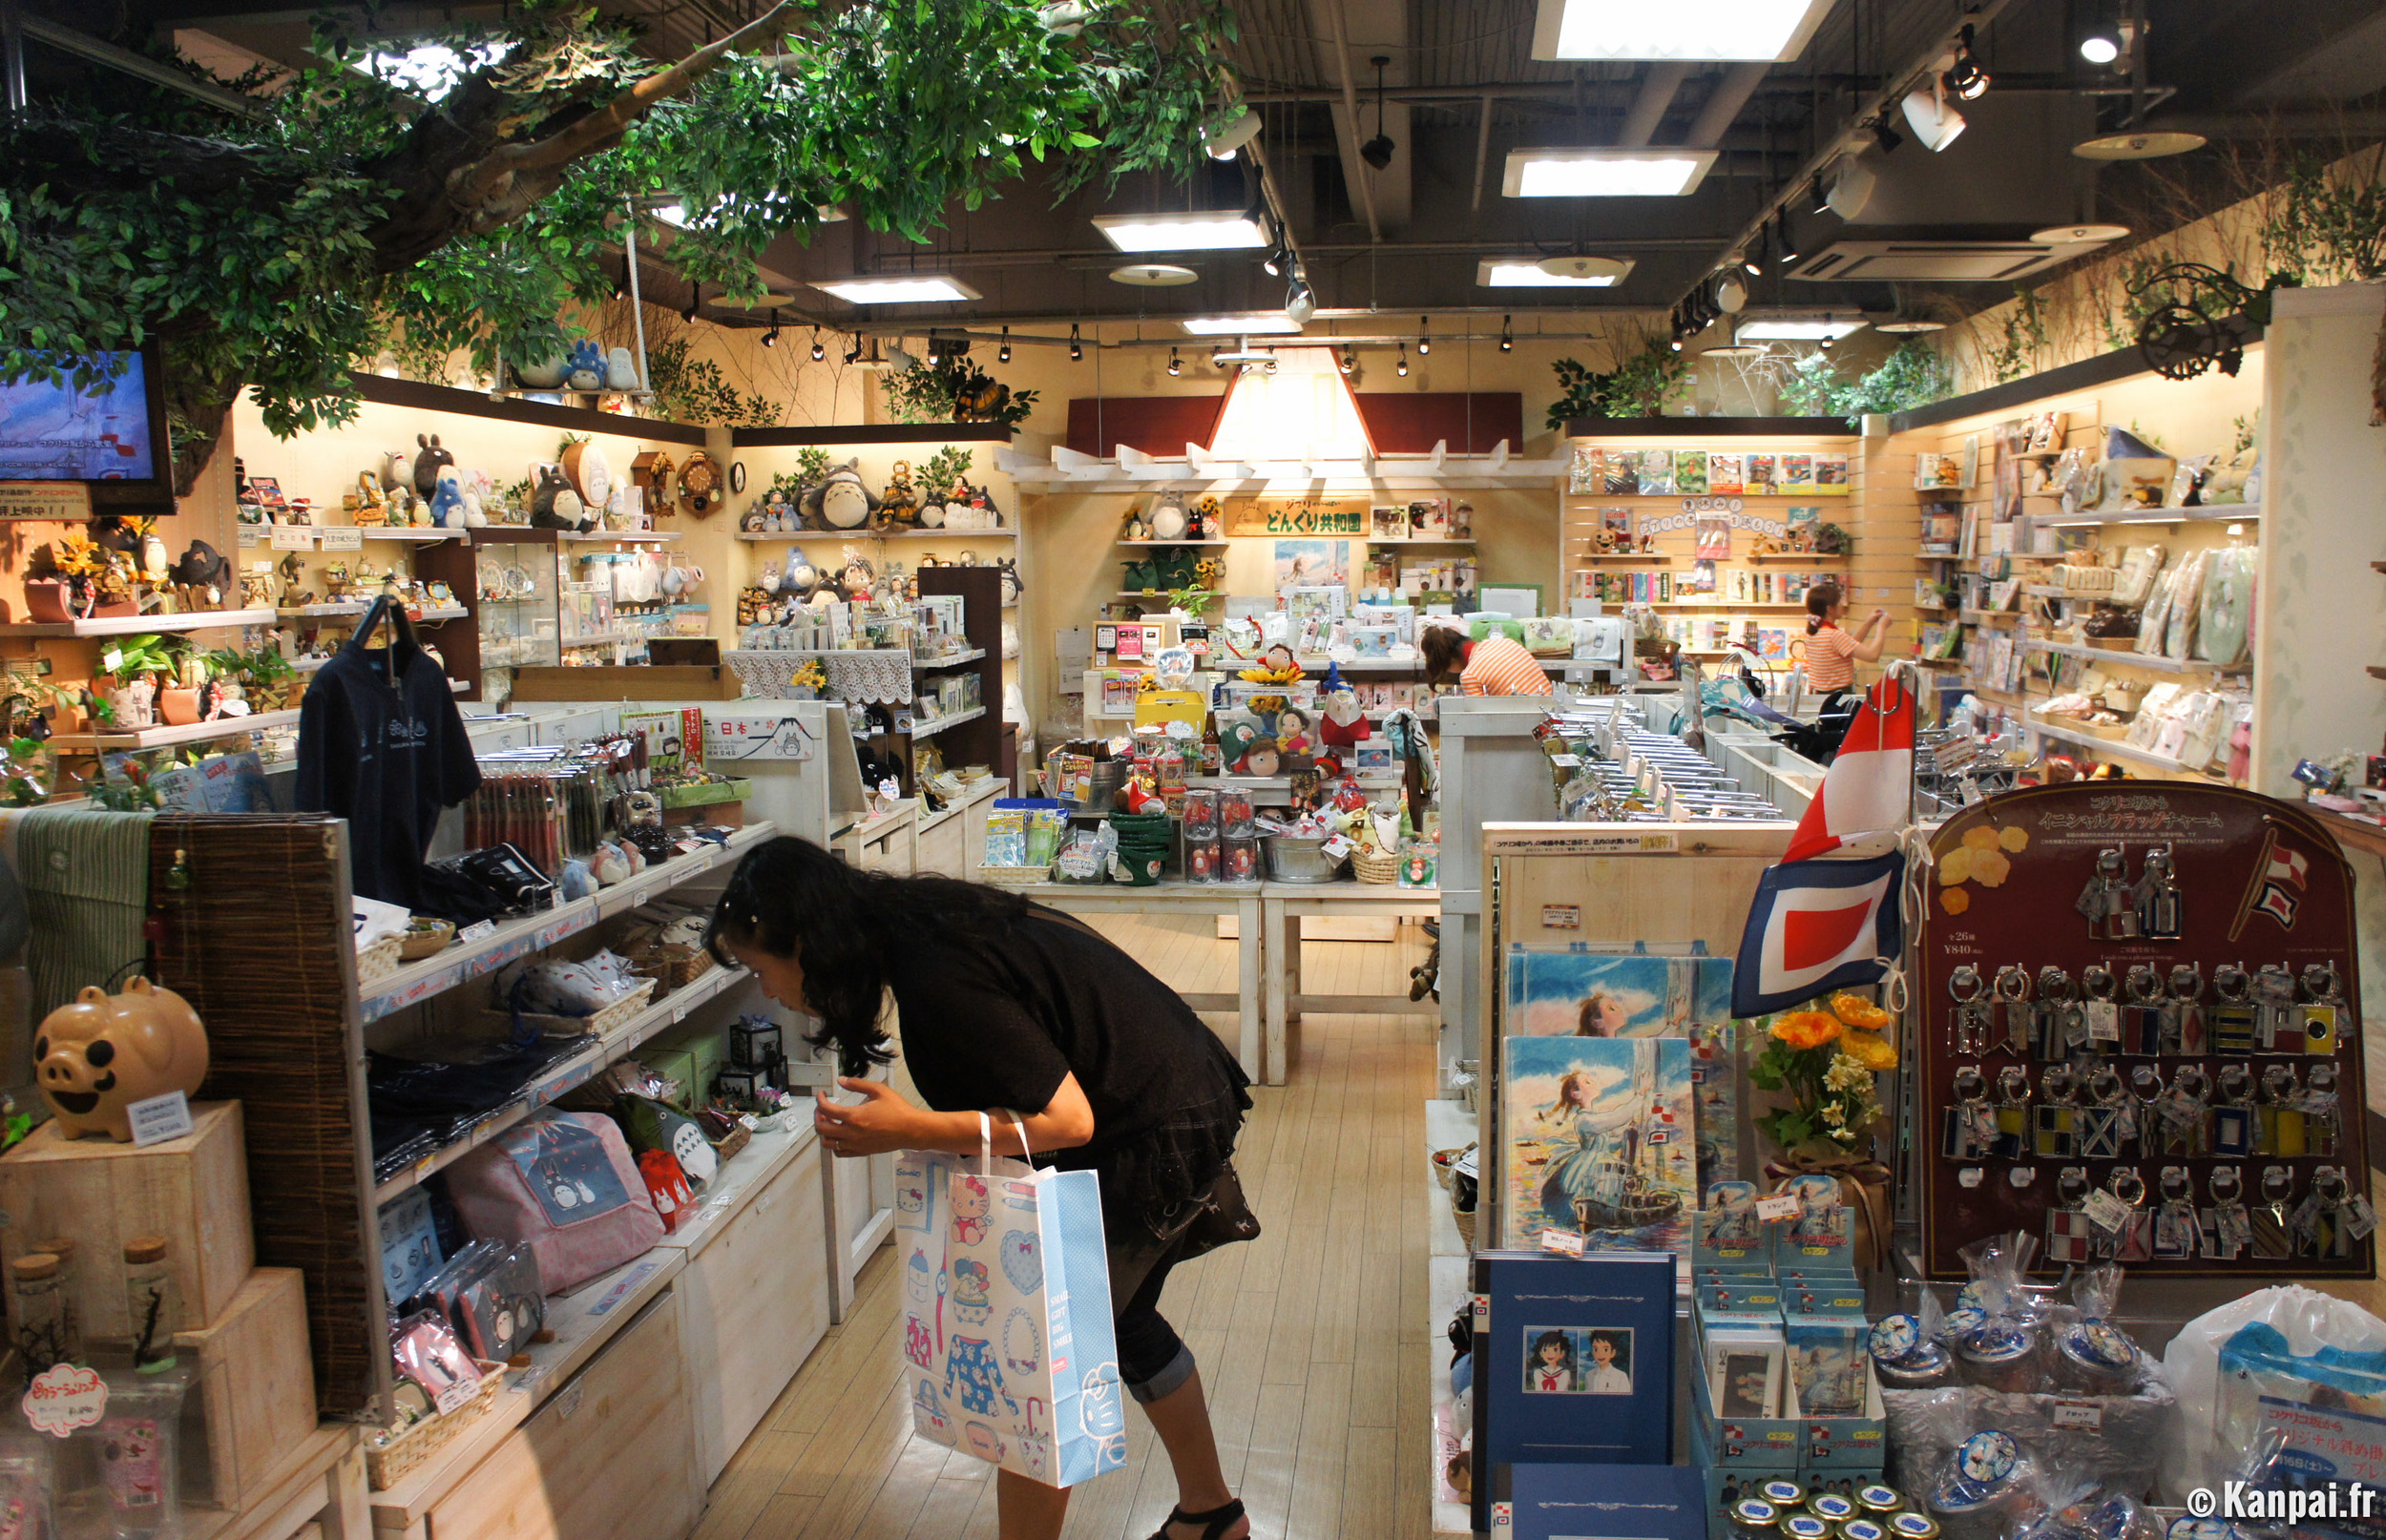 Donguri Kyowakoku, also known as the store that sells ONLY Studio Ghibli products.